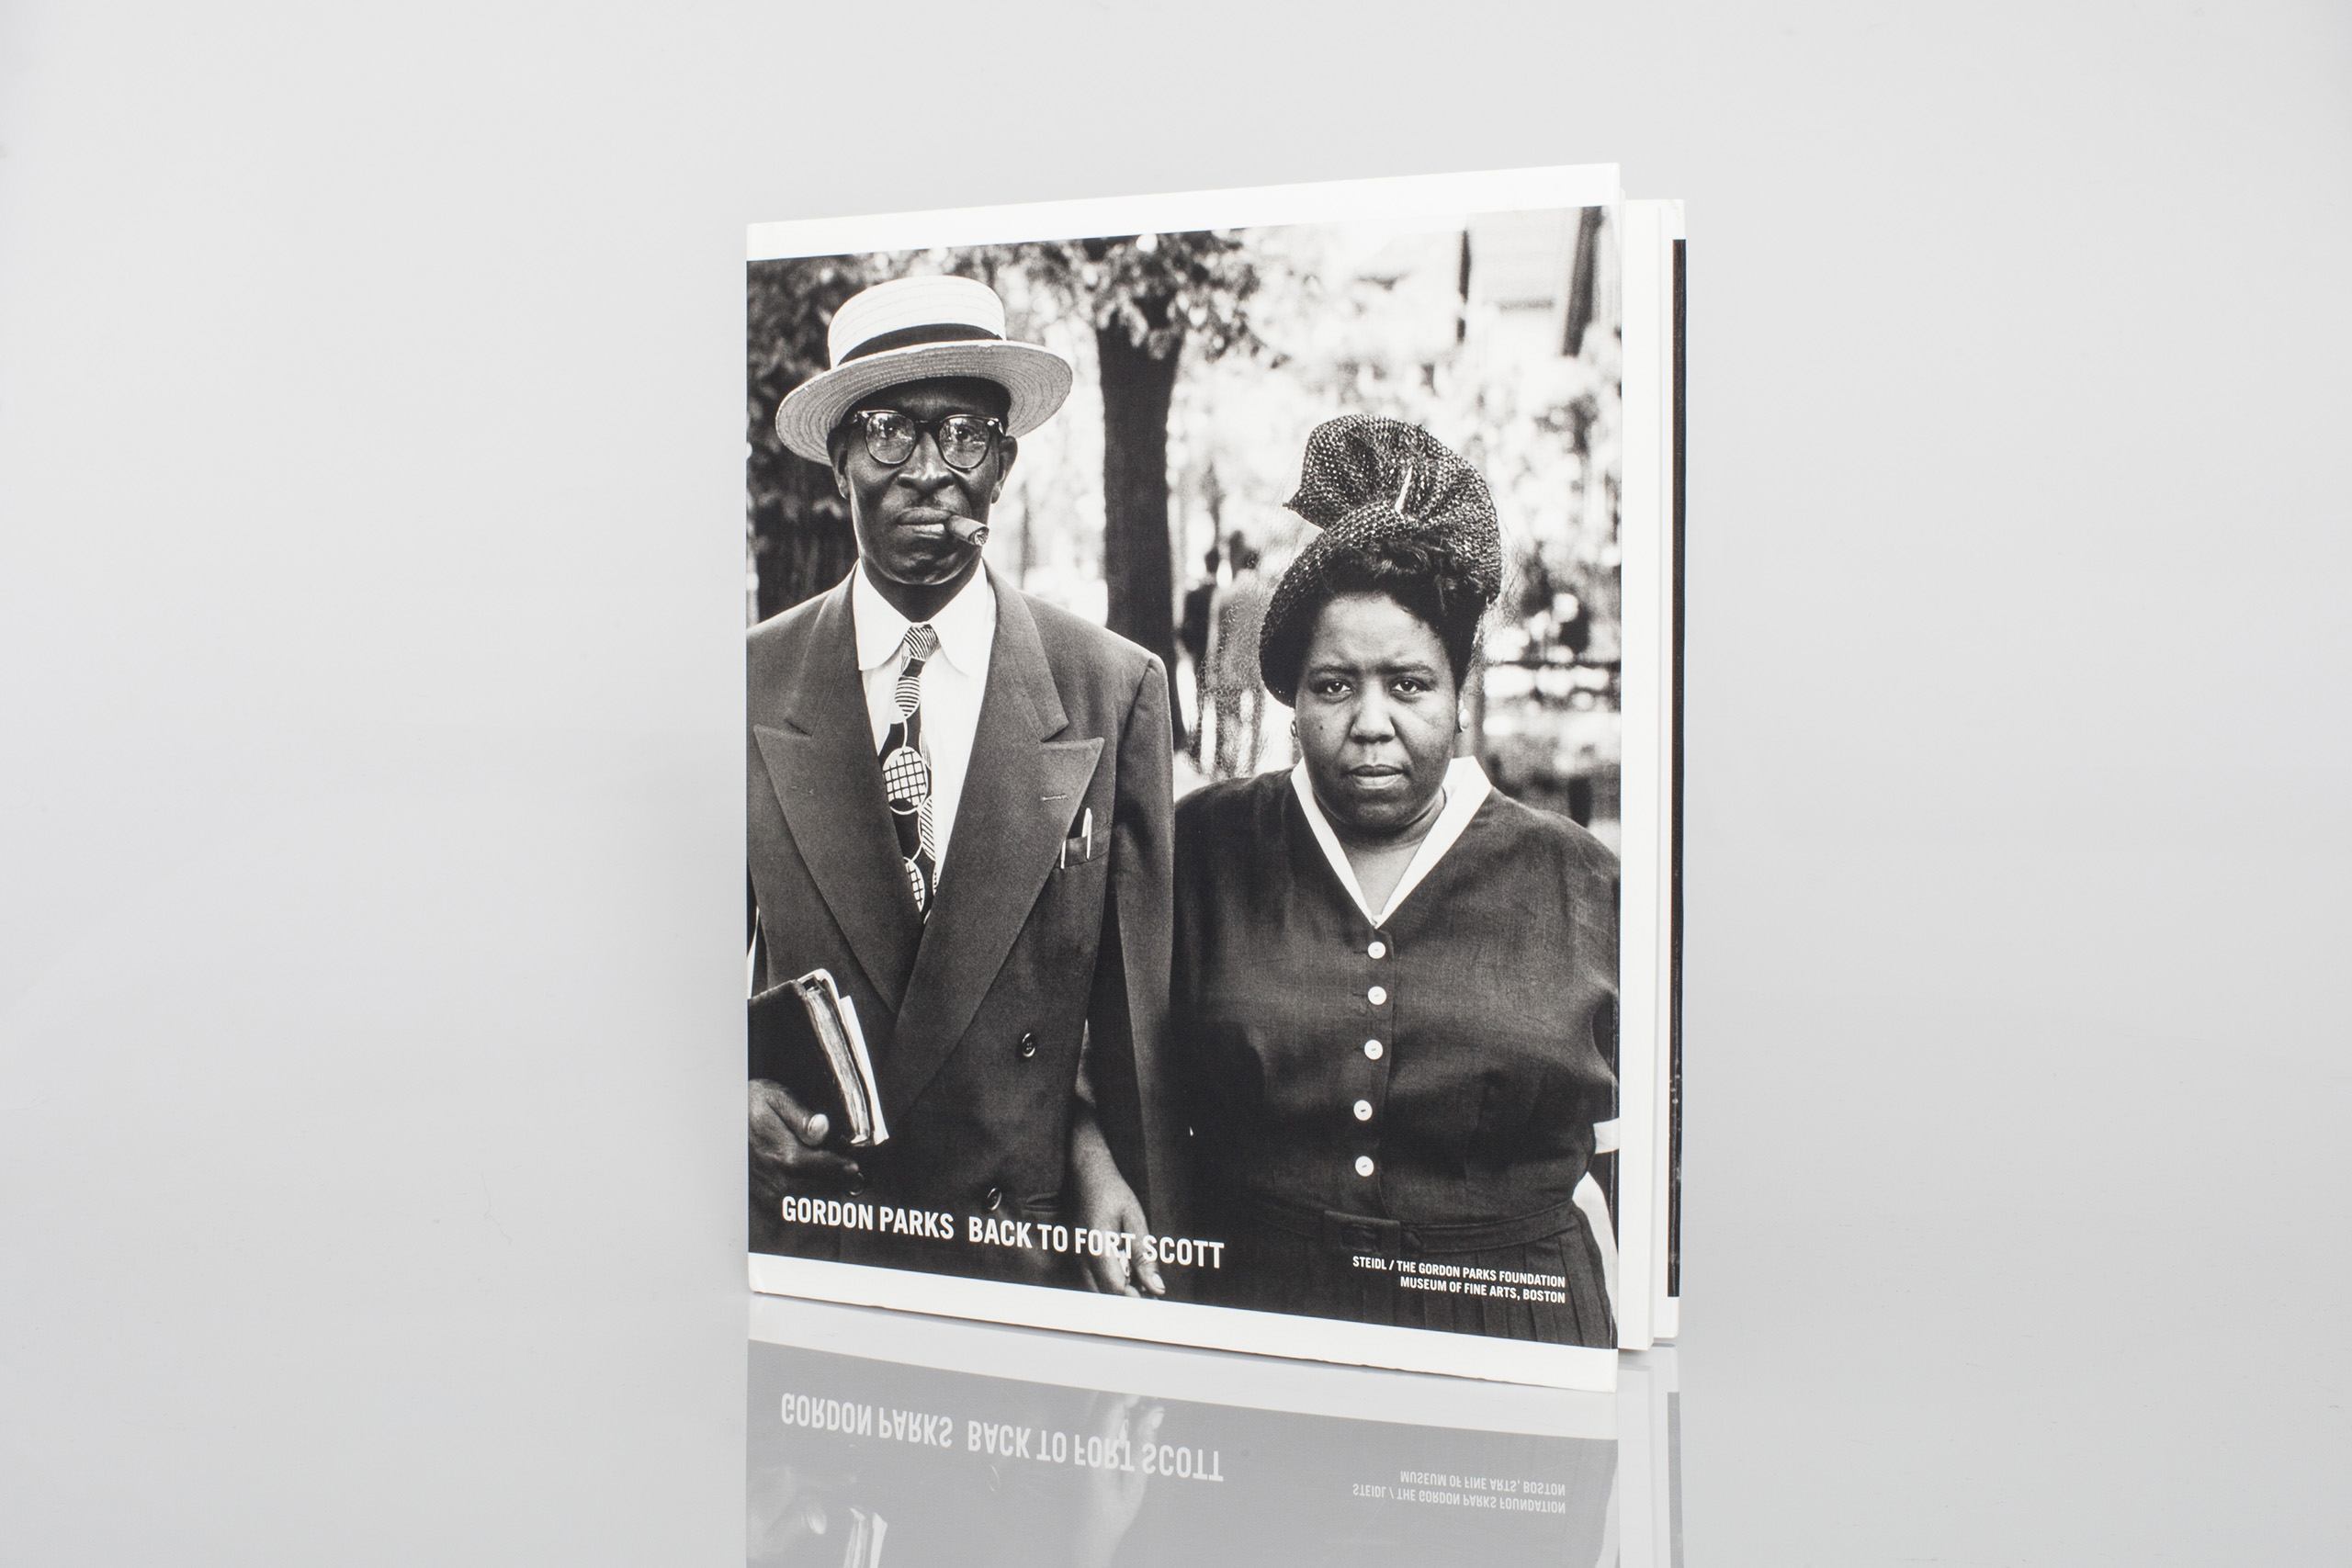 Gordon Parks: Back to Fort Scott  by Museum of Fine Arts, Boston and The Gordon Parks FoundationPublished by Steidl